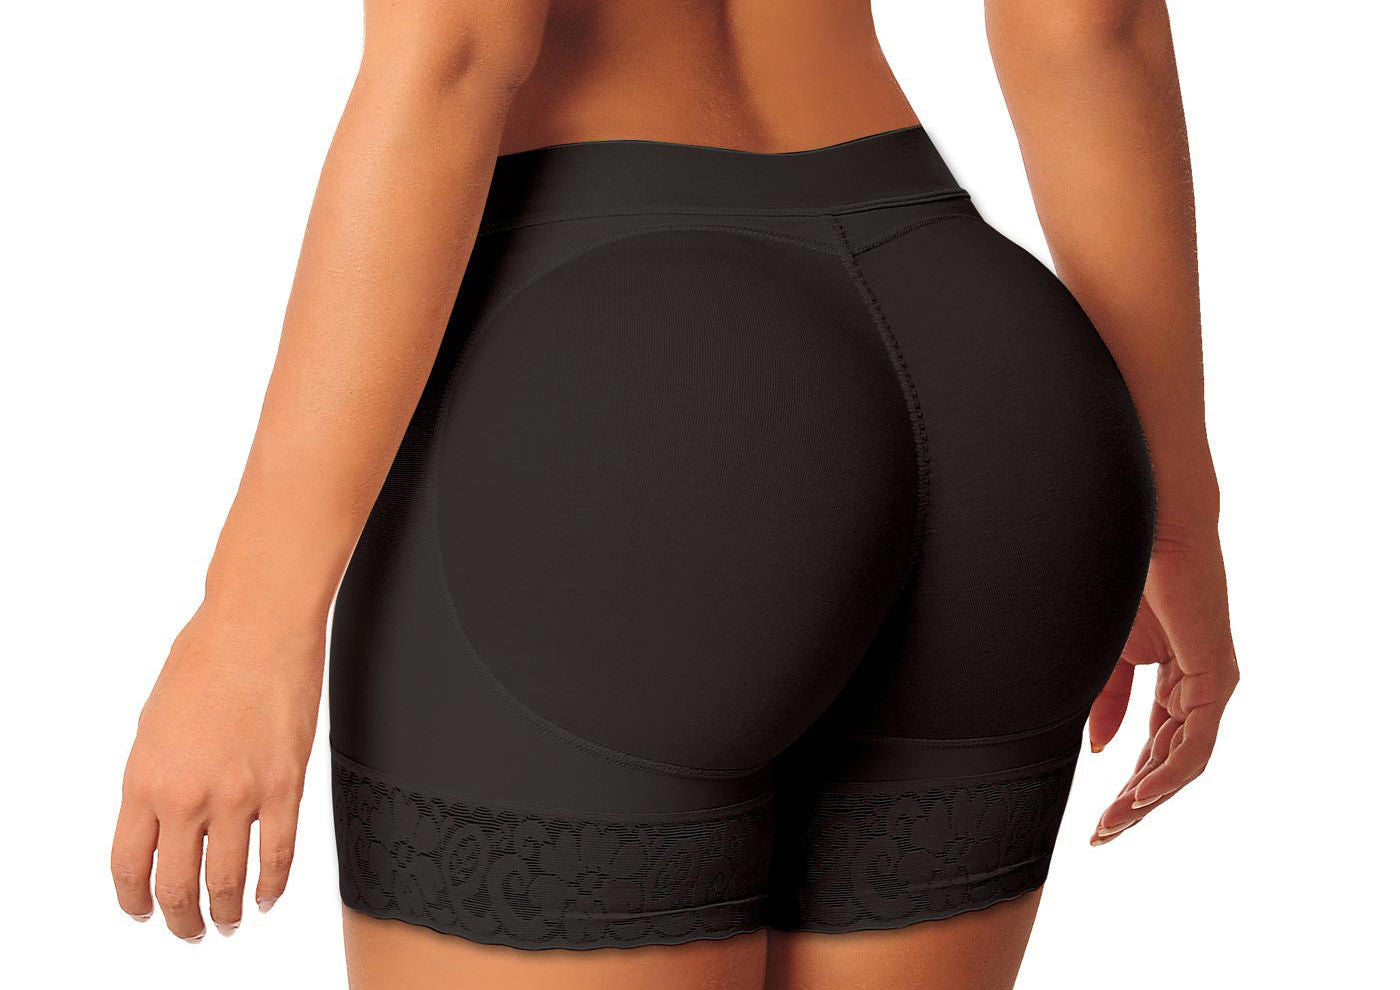 Women's Butt Enhancer